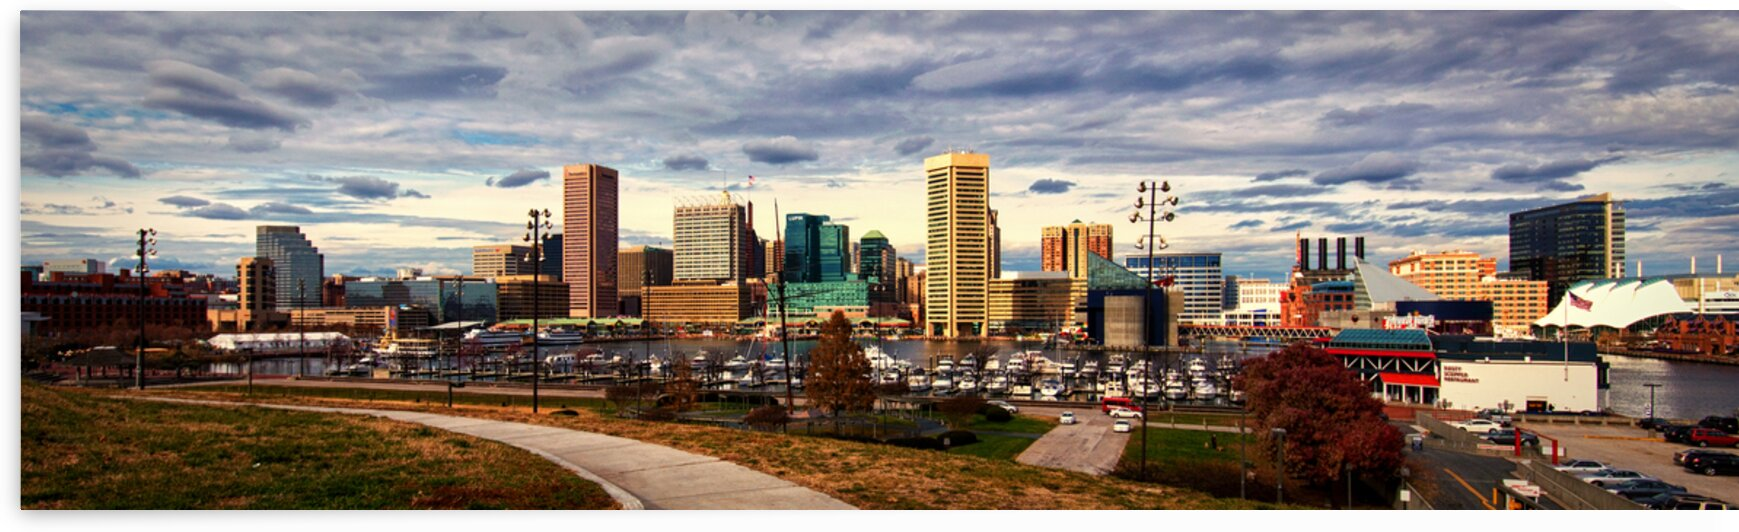 baltimore inner harbor panorama 0217 by Bill Swartwout Photography